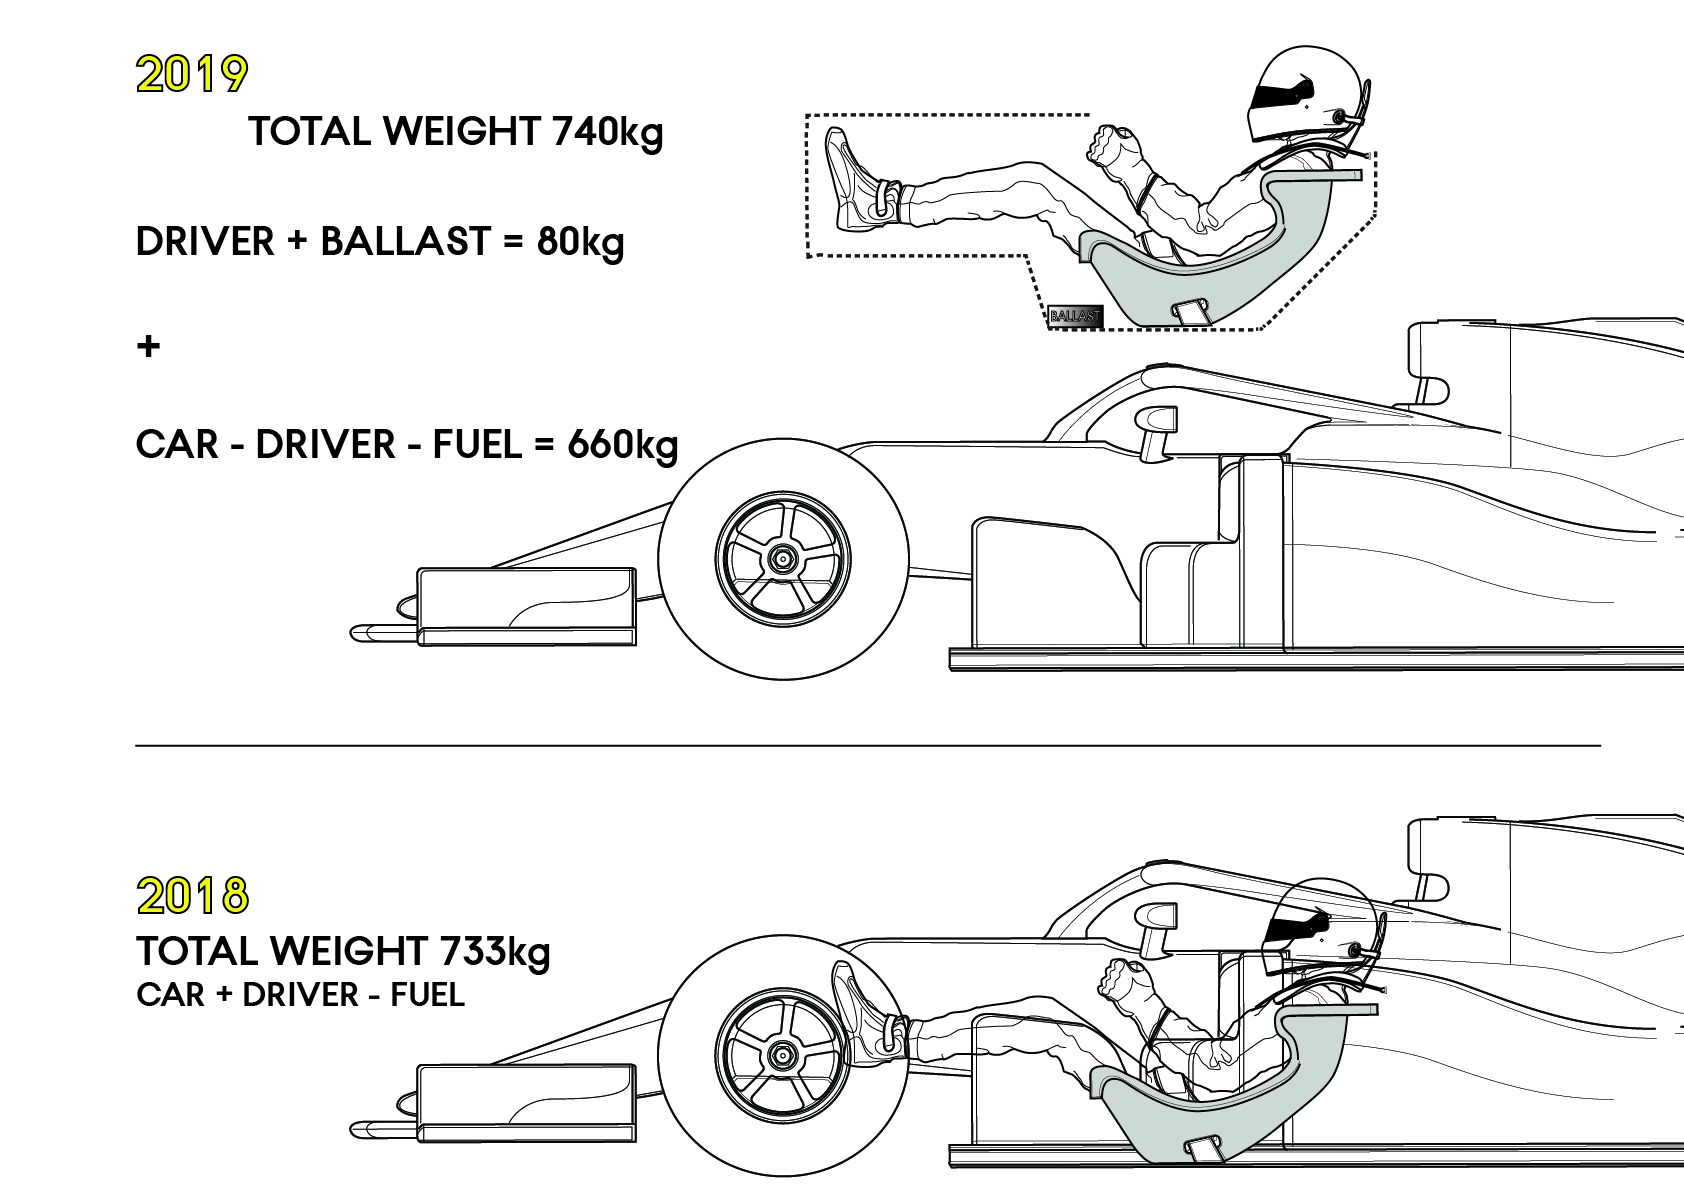 F1 2019 Regulations - Weight